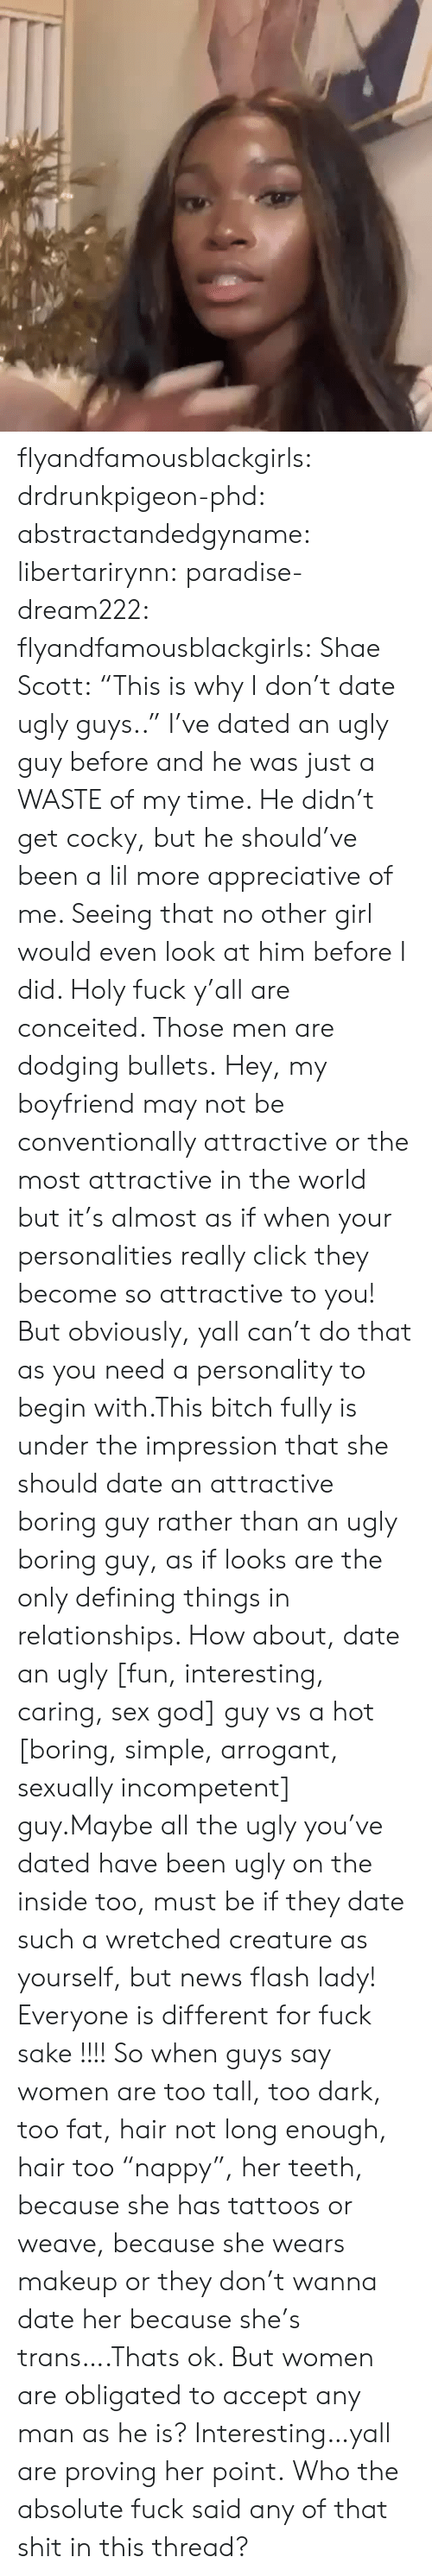 "Impression: flyandfamousblackgirls:  drdrunkpigeon-phd:  abstractandedgyname:  libertarirynn:  paradise-dream222:  flyandfamousblackgirls:  Shae Scott: ""This is why I don't date ugly guys..""  I've dated an ugly guy before and he was just a WASTE of my time. He didn't get cocky, but he should've been a lil more appreciative of me. Seeing that no other girl would even look at him before I did.   Holy fuck y'all are conceited. Those men are dodging bullets.    Hey, my boyfriend may not be conventionally attractive or the most attractive in the world but it's almost as if when your personalities really click they become so attractive to you! But obviously, yall can't do that as you need a personality to begin with.This bitch fully is under the impression that she should date an attractive boring guy rather than an ugly boring guy, as if looks are the only defining things in relationships. How about, date an ugly [fun, interesting, caring, sex god] guy vs a hot [boring, simple, arrogant, sexually incompetent] guy.Maybe all the ugly you've dated have been ugly on the inside too, must be if they date such a wretched creature as yourself, but news flash lady! Everyone is different for fuck sake !!!!  So when guys say women are too tall, too dark, too fat, hair not long enough, hair too ""nappy"", her teeth, because she has tattoos or weave, because she wears makeup or they don't wanna date her because she's trans….Thats ok. But women are obligated to accept any man as he is? Interesting…yall are proving her point.  Who the absolute fuck said any of that shit in this thread?"